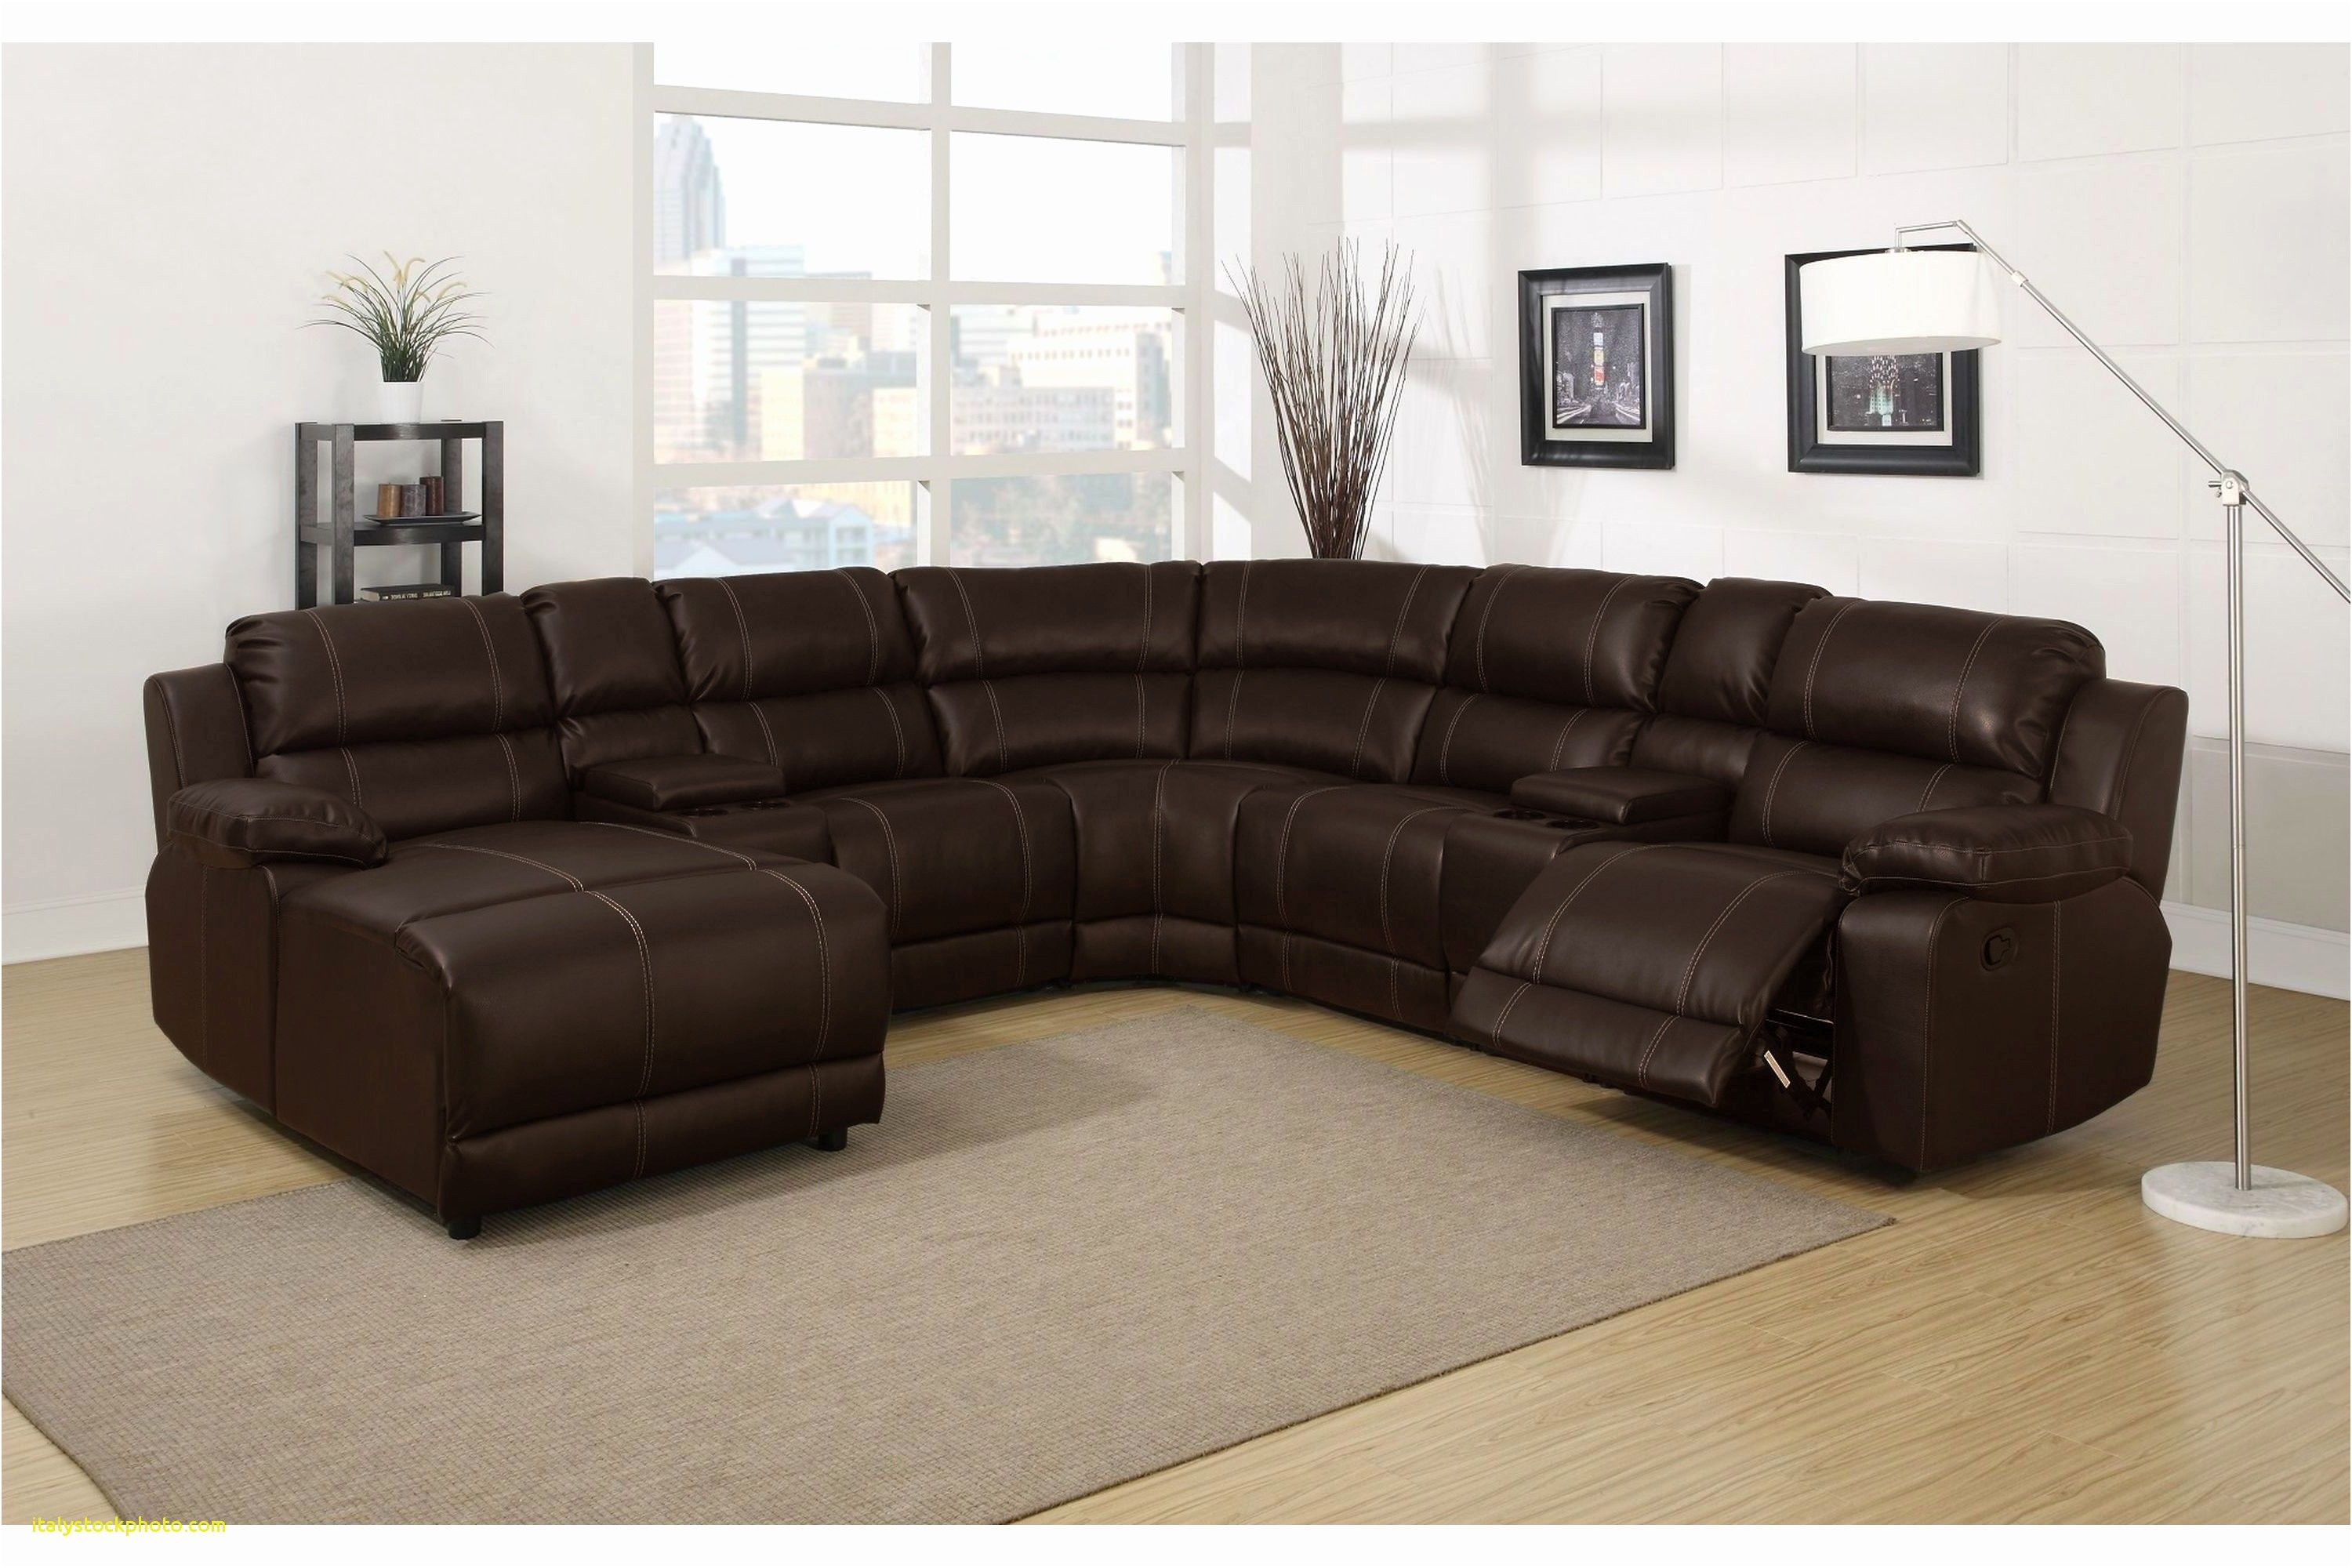 Leather Couches For Sale Near Me Fresh Leather Couches For Sale Near Me    House For Rent Near Me #leather #leathercleaner #leathercleanerforsofas ...